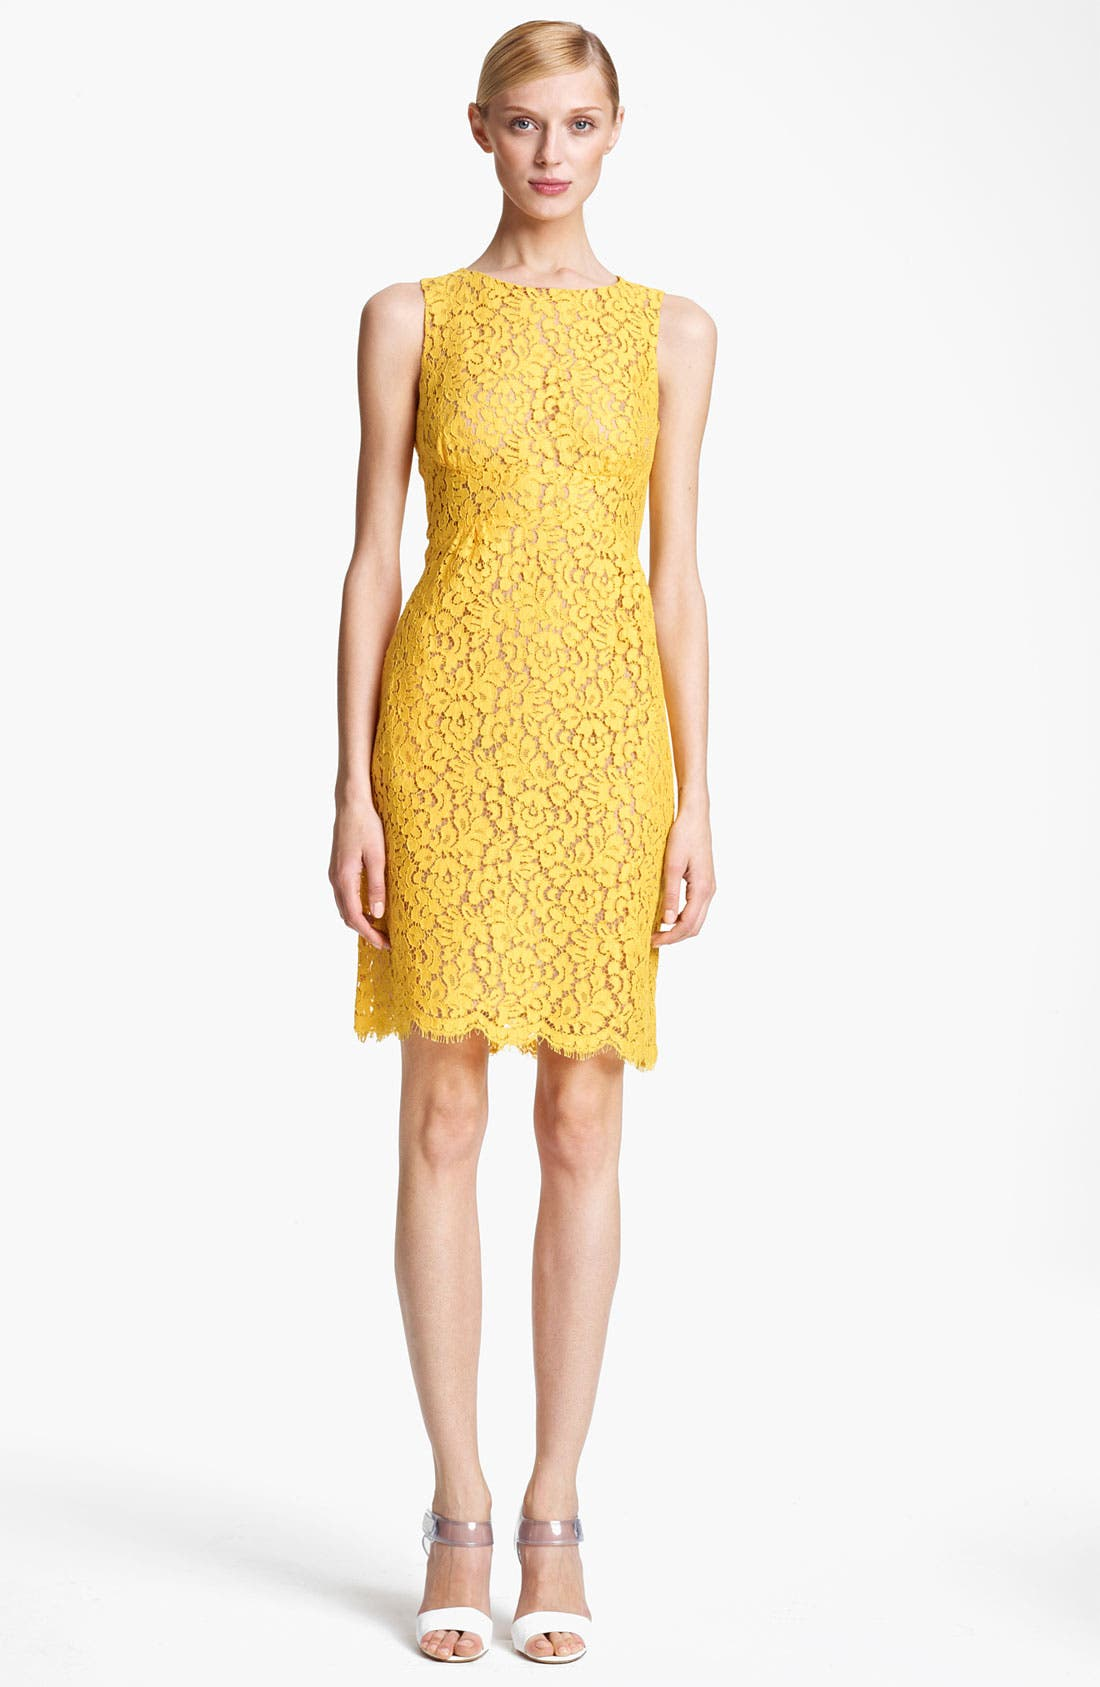 Alternate Image 1 Selected - Michael Kors Floral Lace Shift Dress